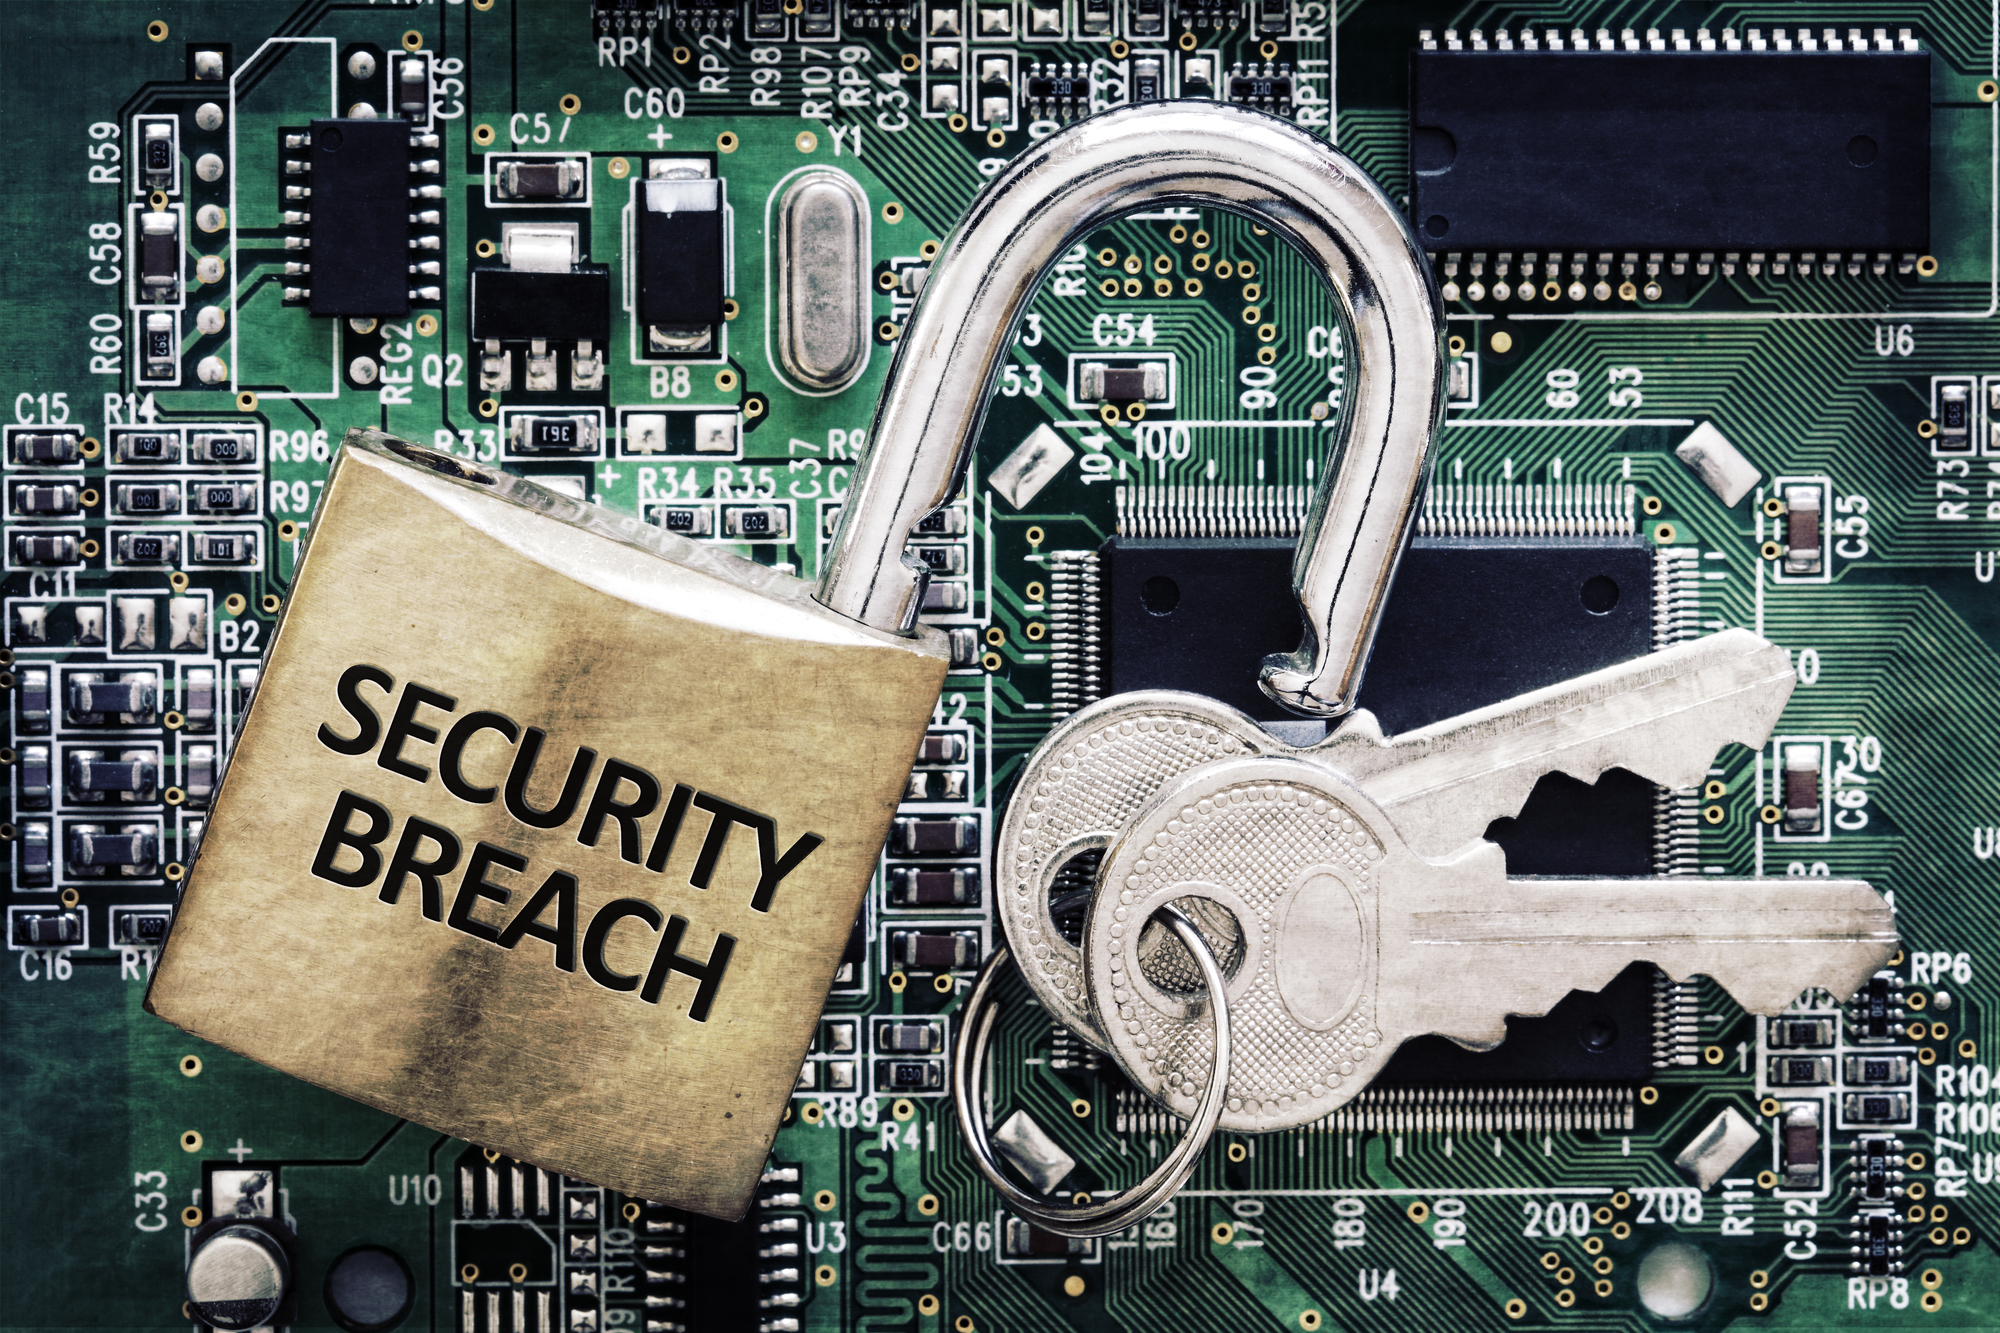 The Equifax breach exposed the private data, including Social Security numbers, of more than 150 million people